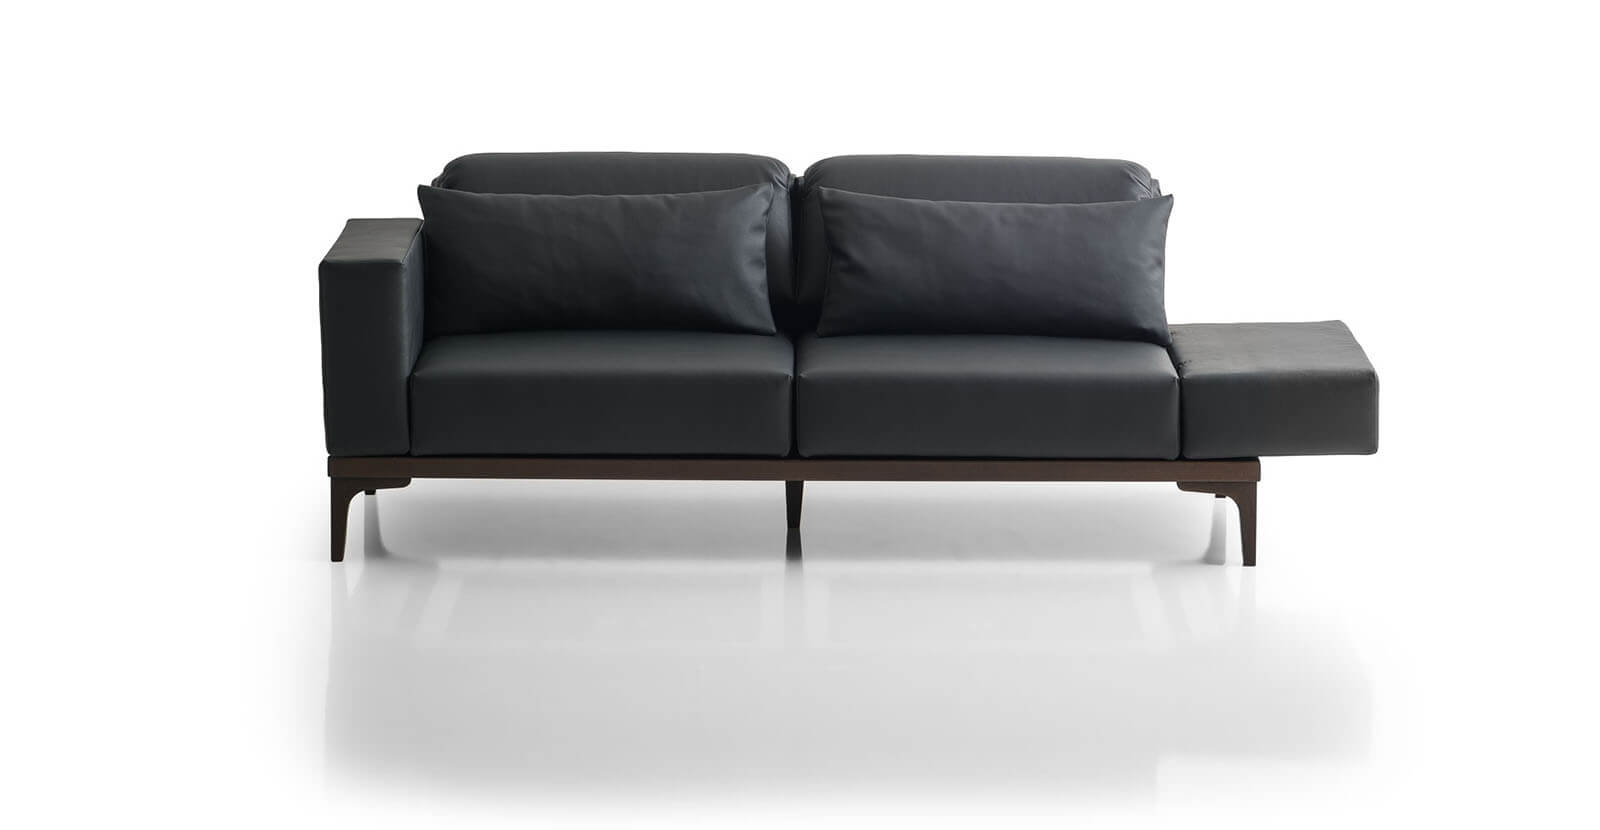 sofabed mito mit r ckenverstellung by franz fertig. Black Bedroom Furniture Sets. Home Design Ideas